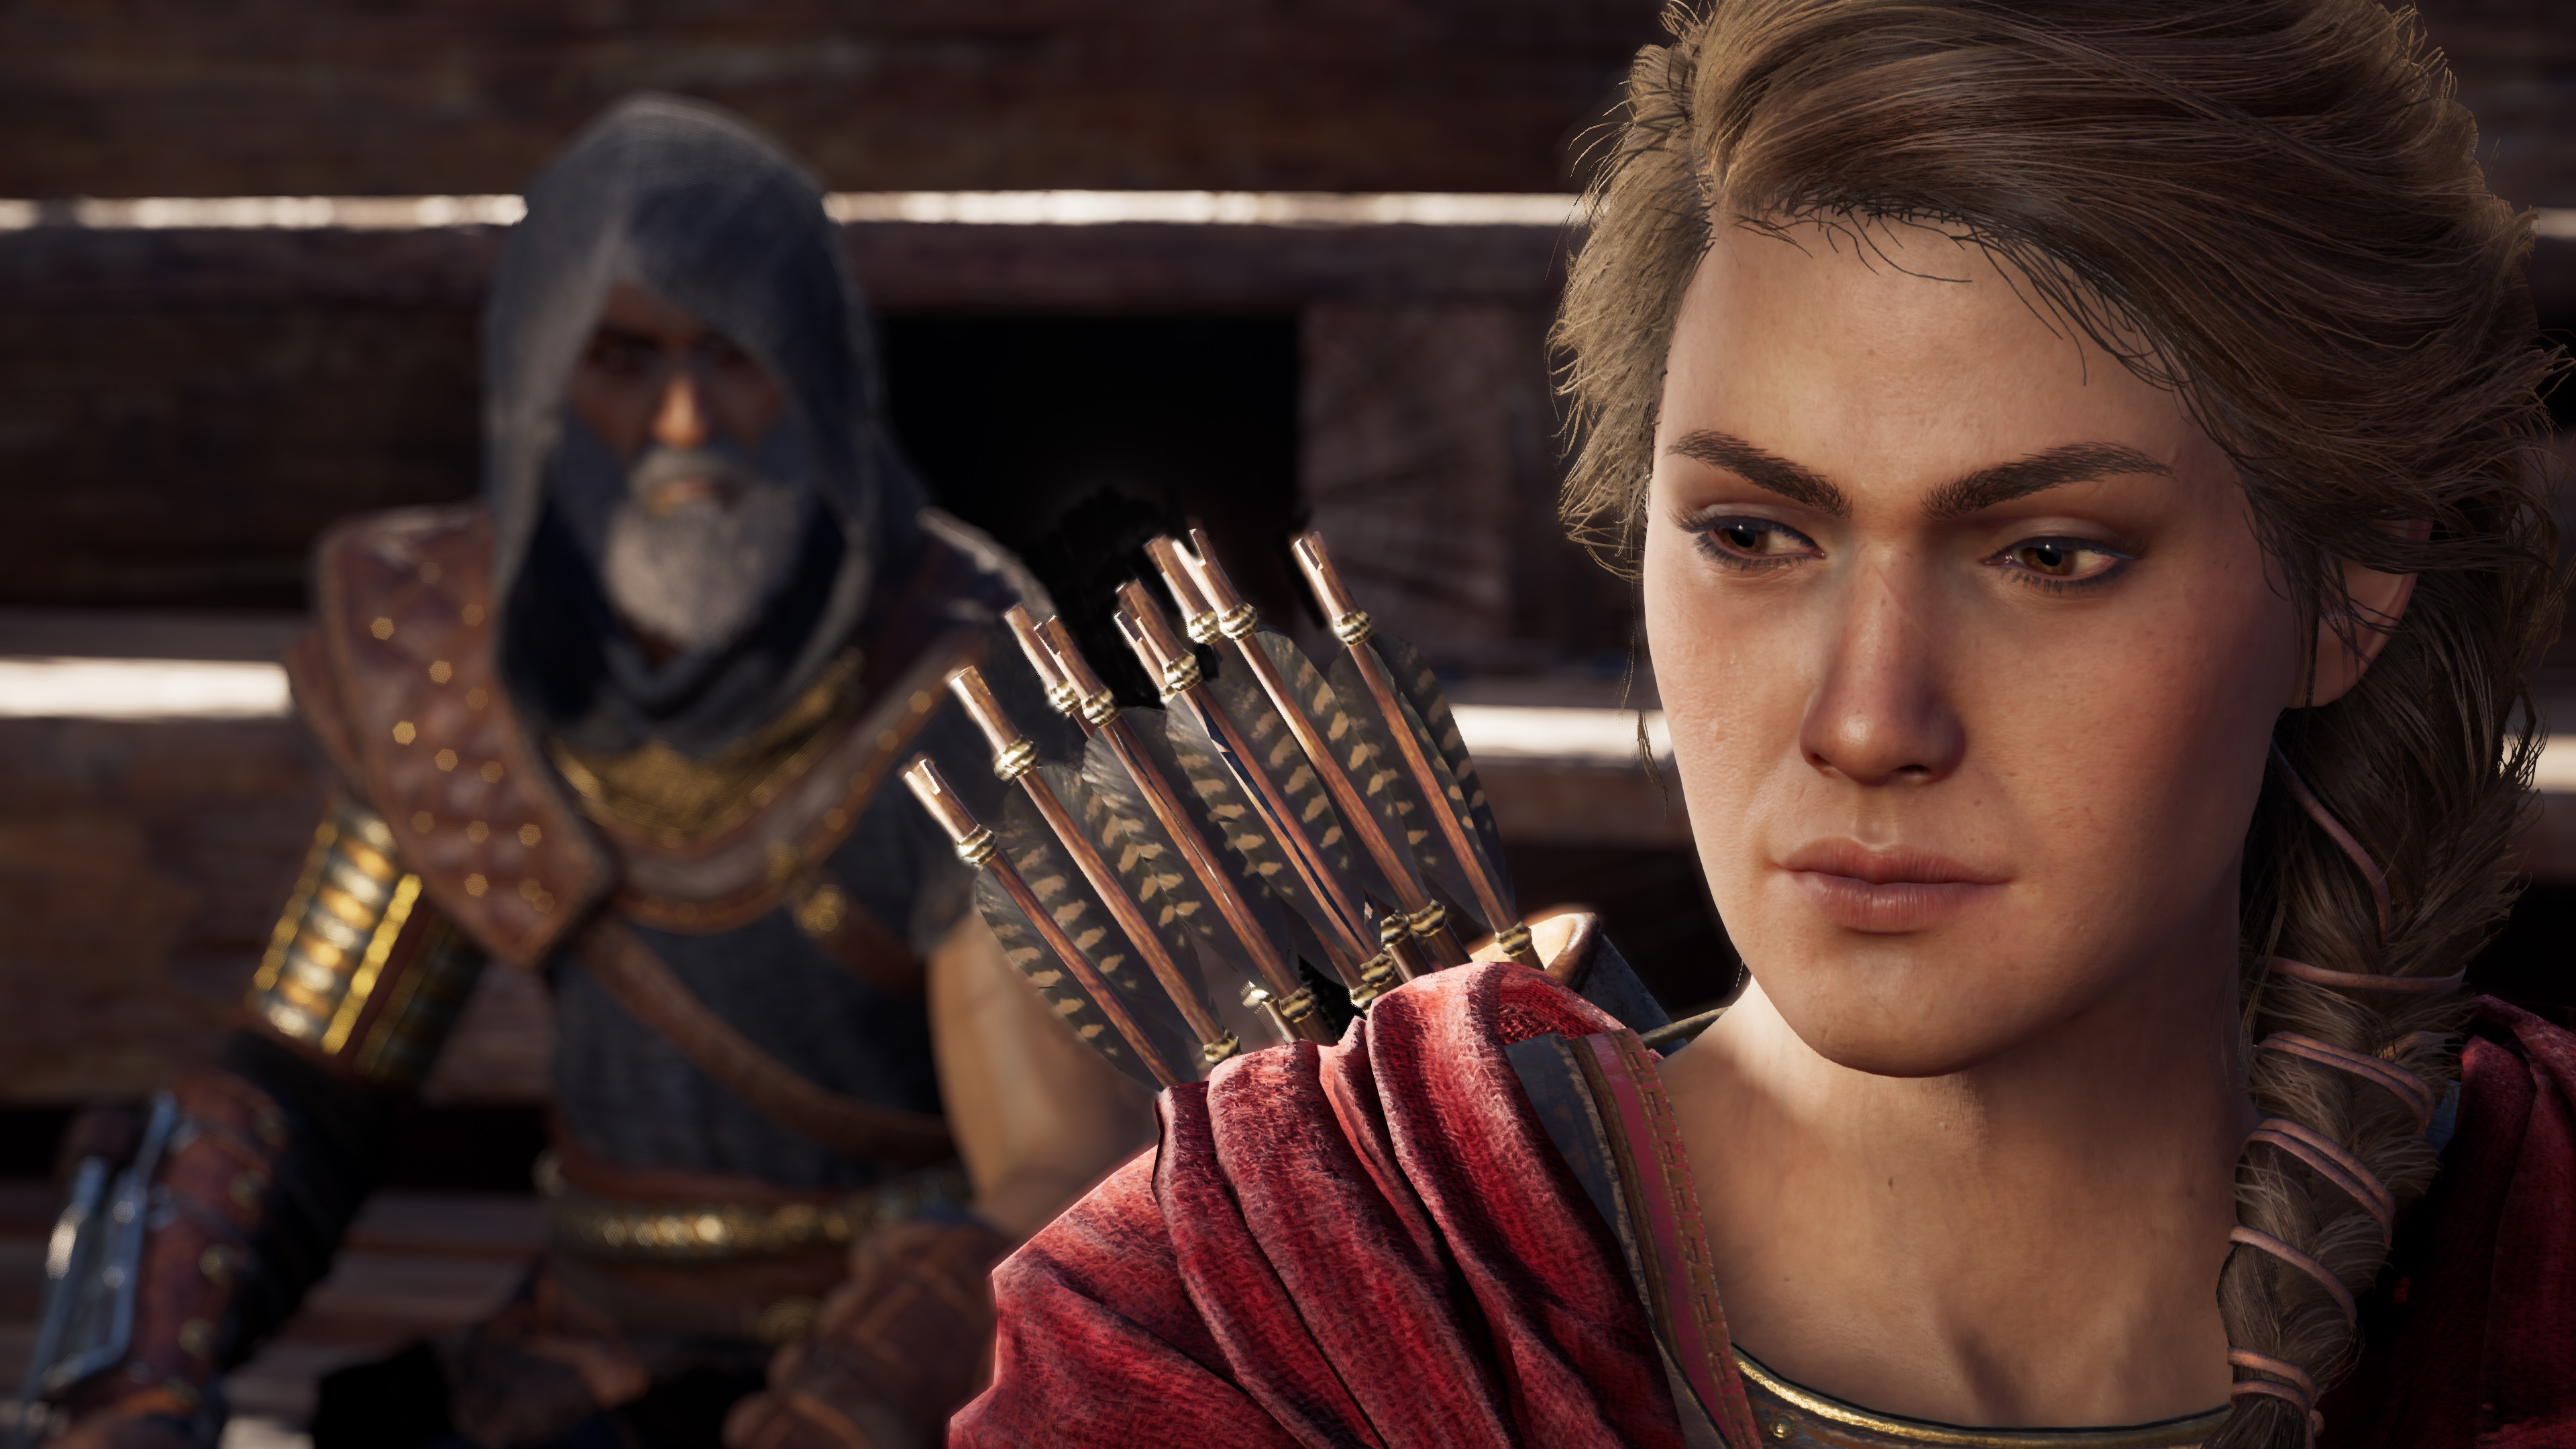 Everyone should experience what I felt playing Assassin's Creed Odyssey